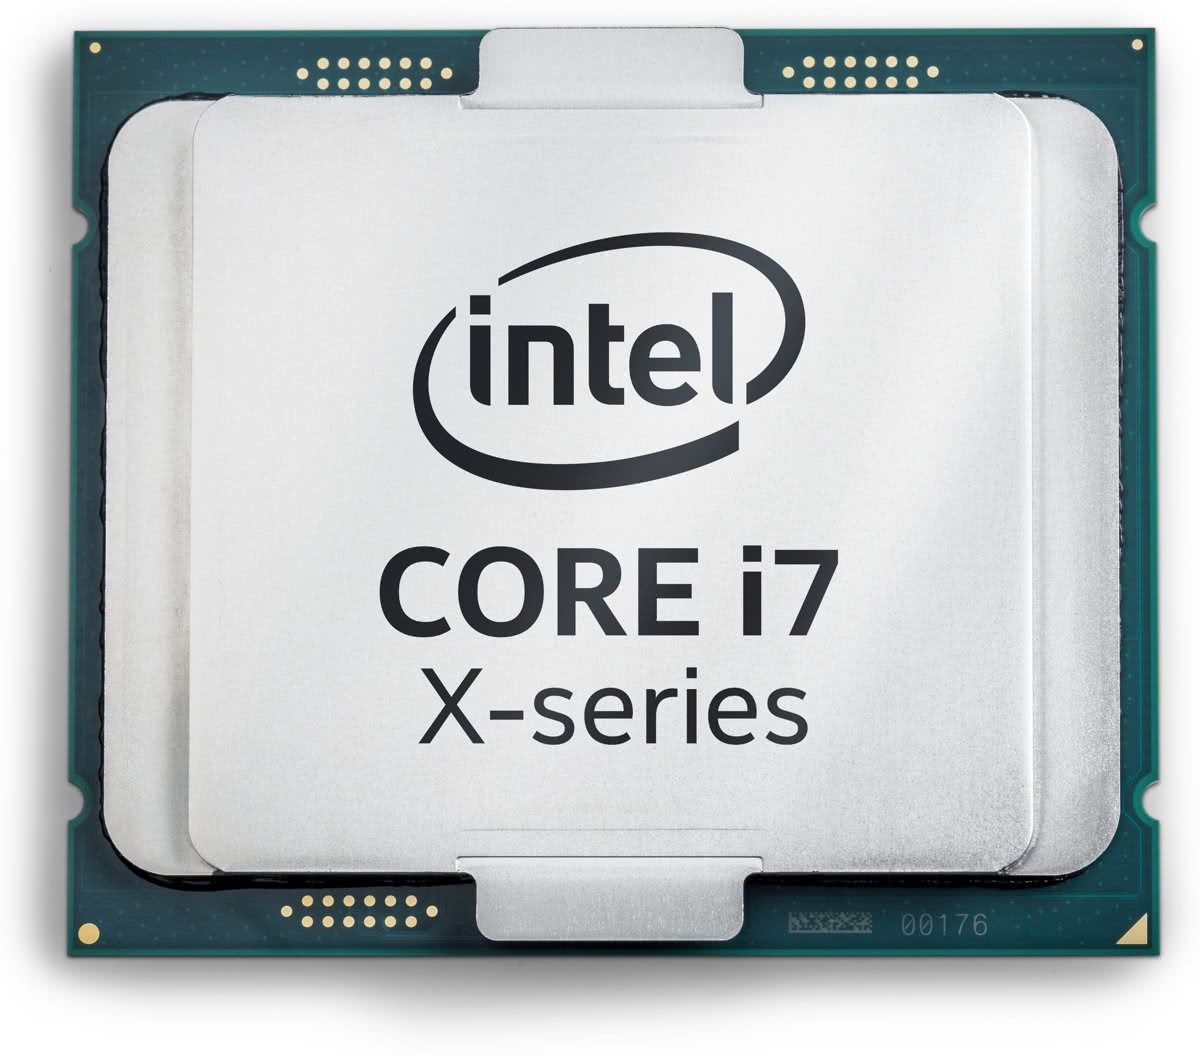 Core ® ™ i7-7800X X-series Processor (8.25M Cache, up to 4.00 GHz) 3.5GHz 8.25MB L3 Box processor